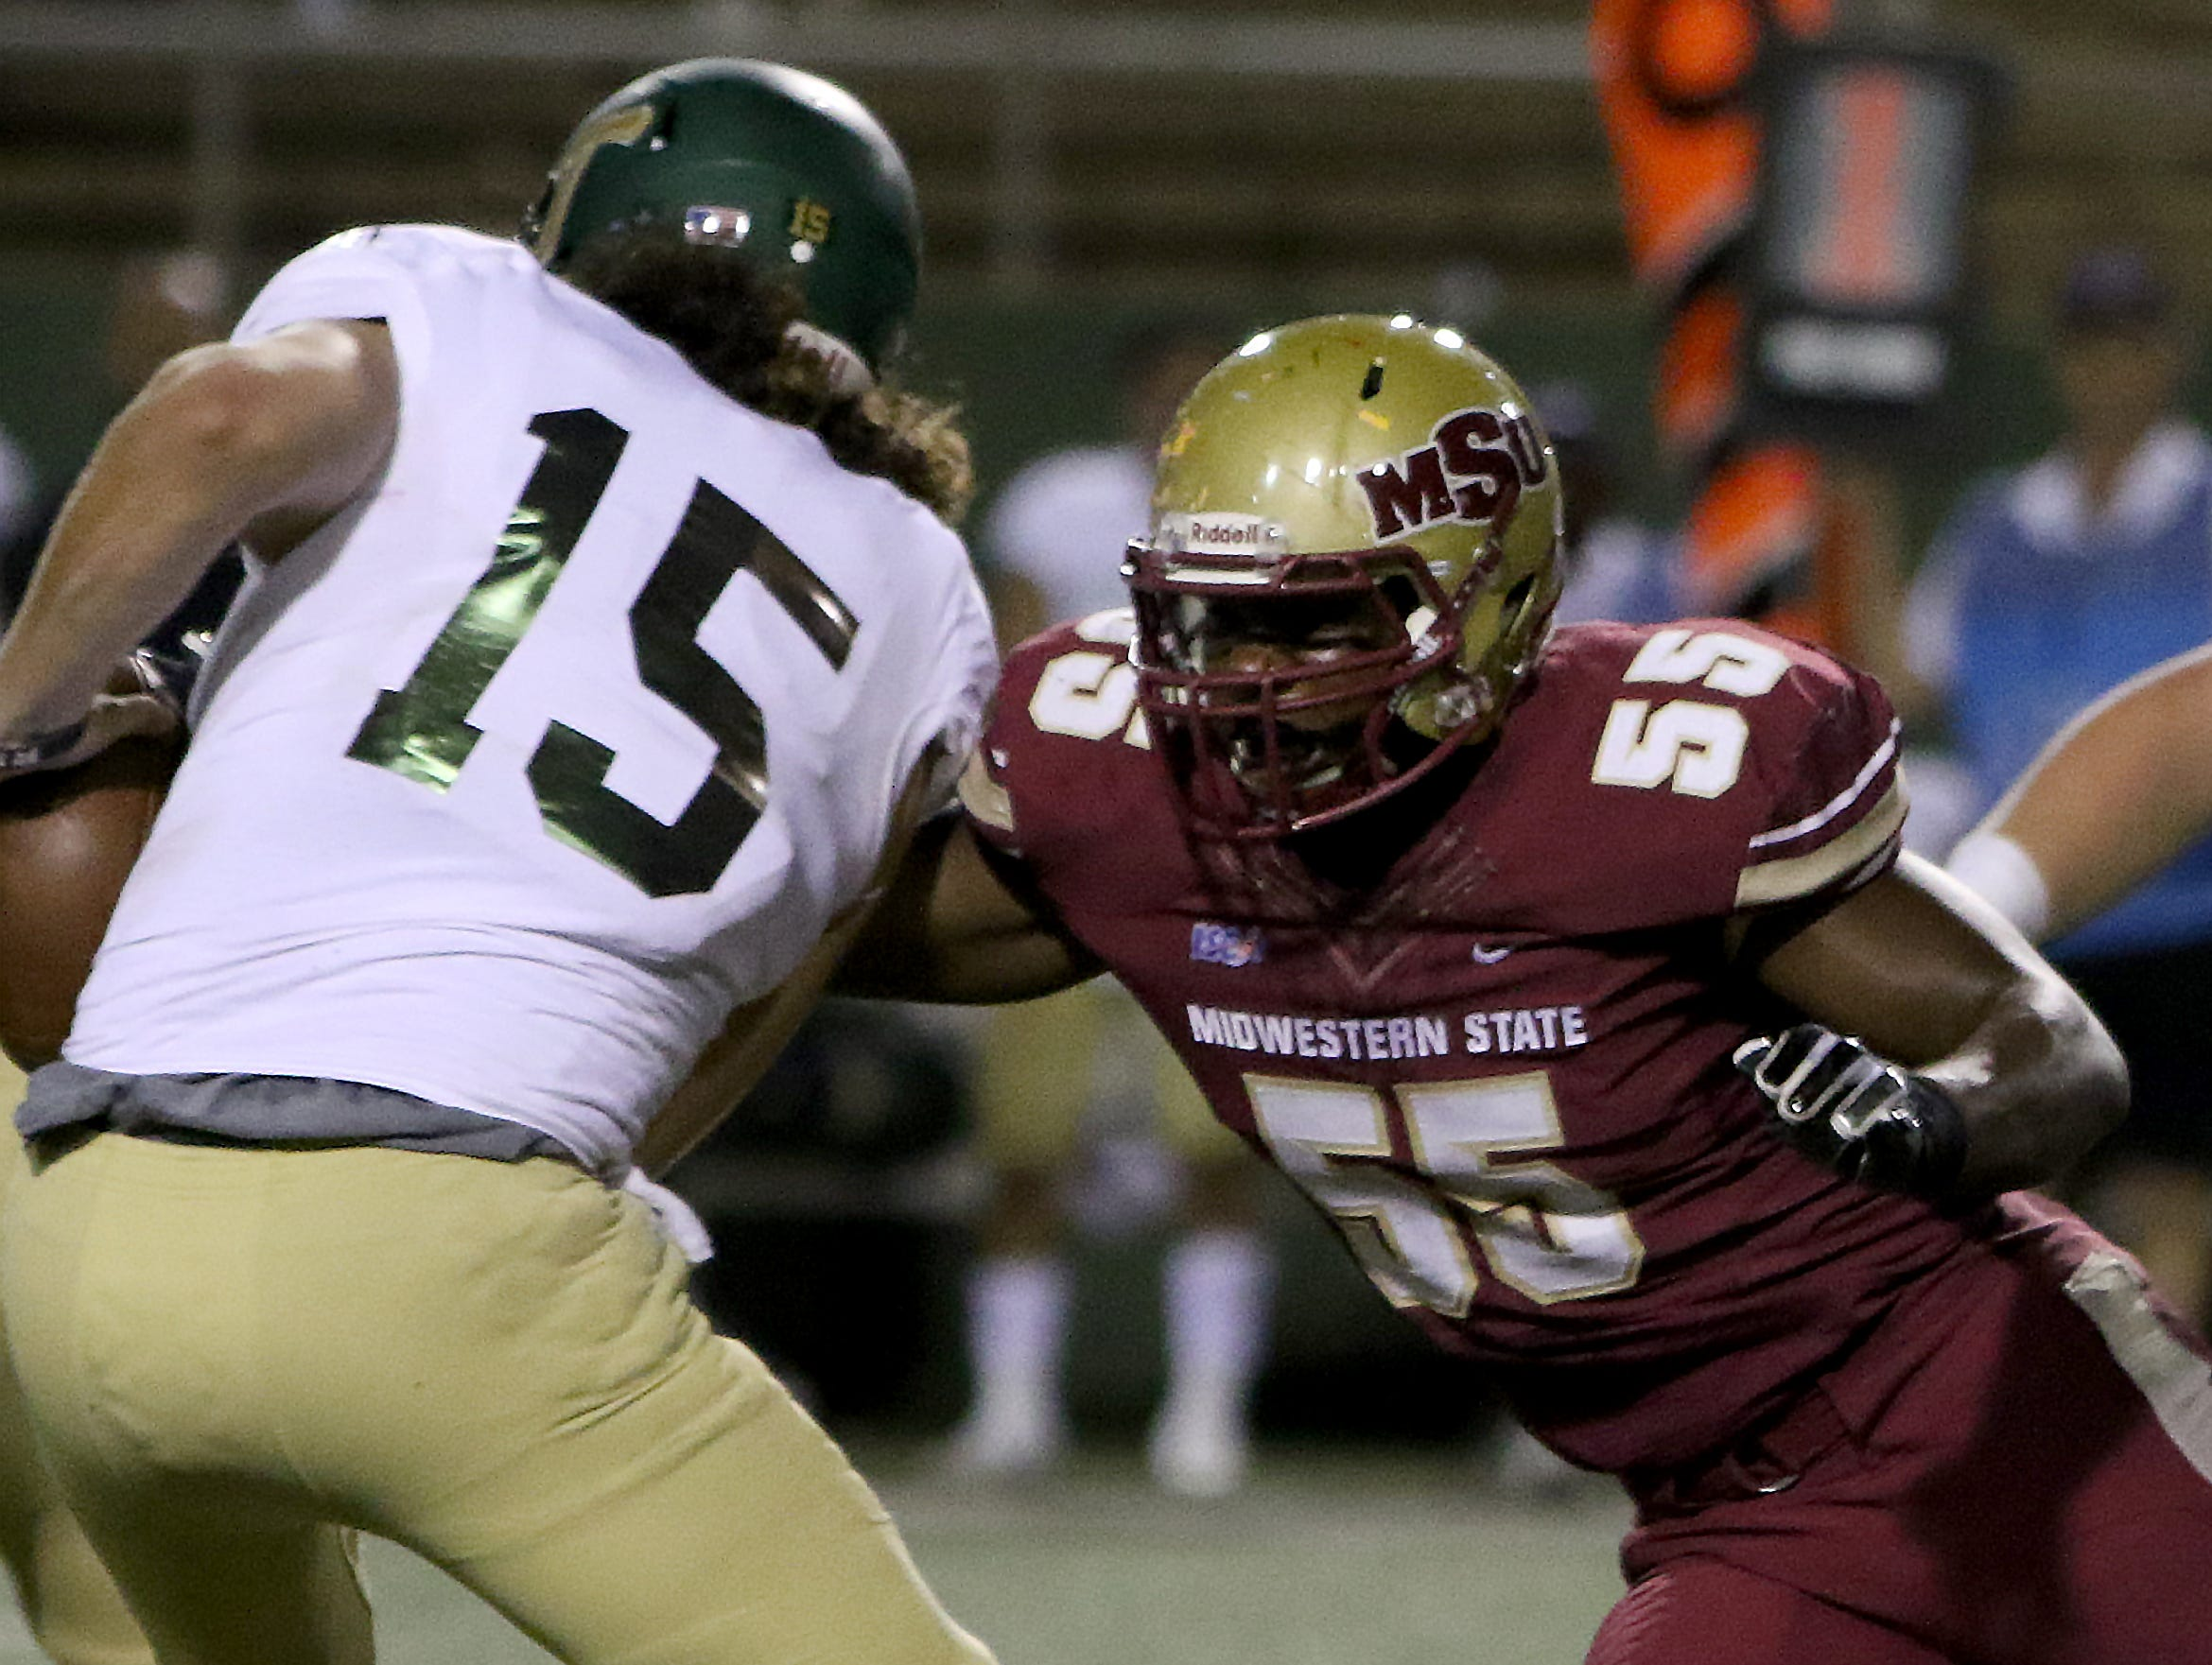 Humboldt State football, home to former Salinas stars, calls it quits